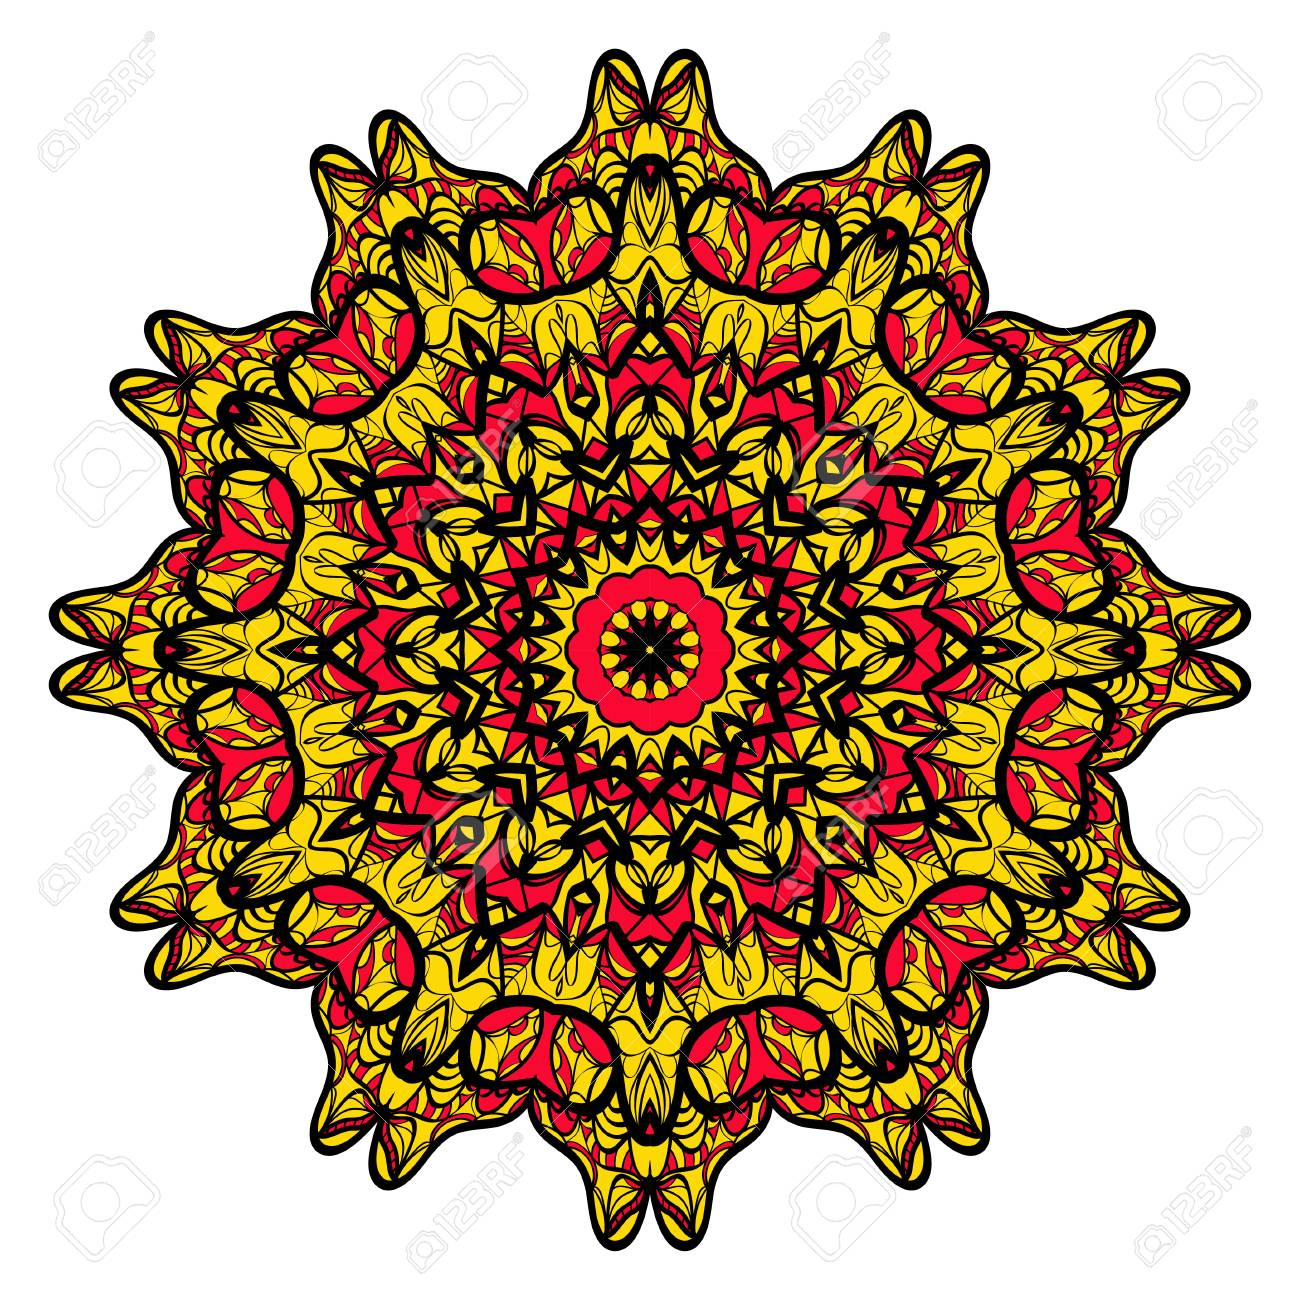 A Yellow Red Black Color Flower Mandala Round Ornament Design Vector Illustration Stock